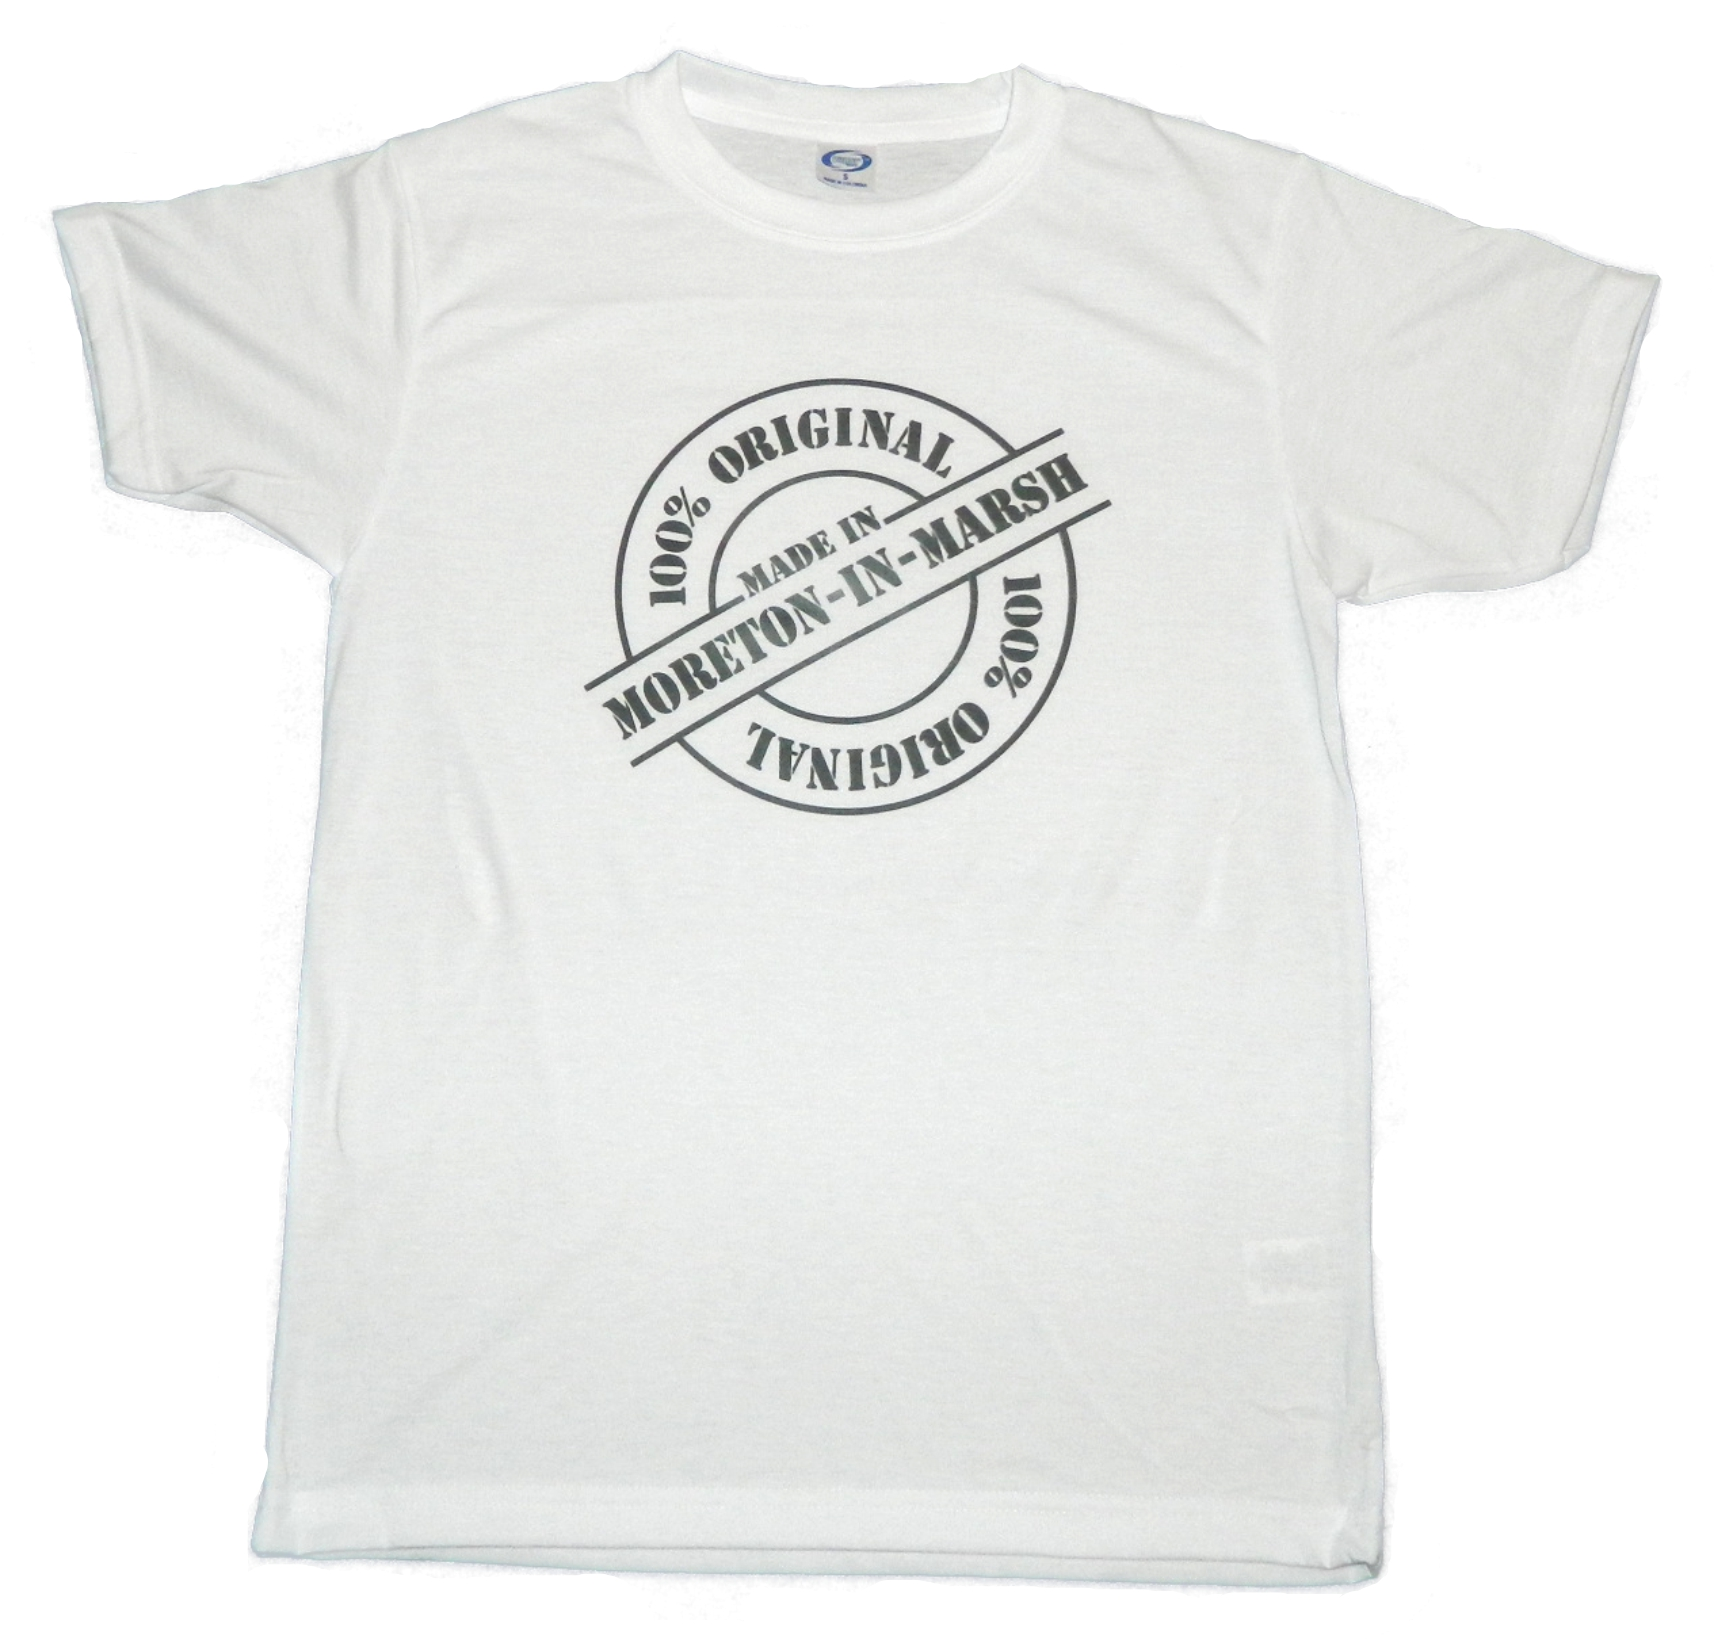 100% Original T-Shirt - White